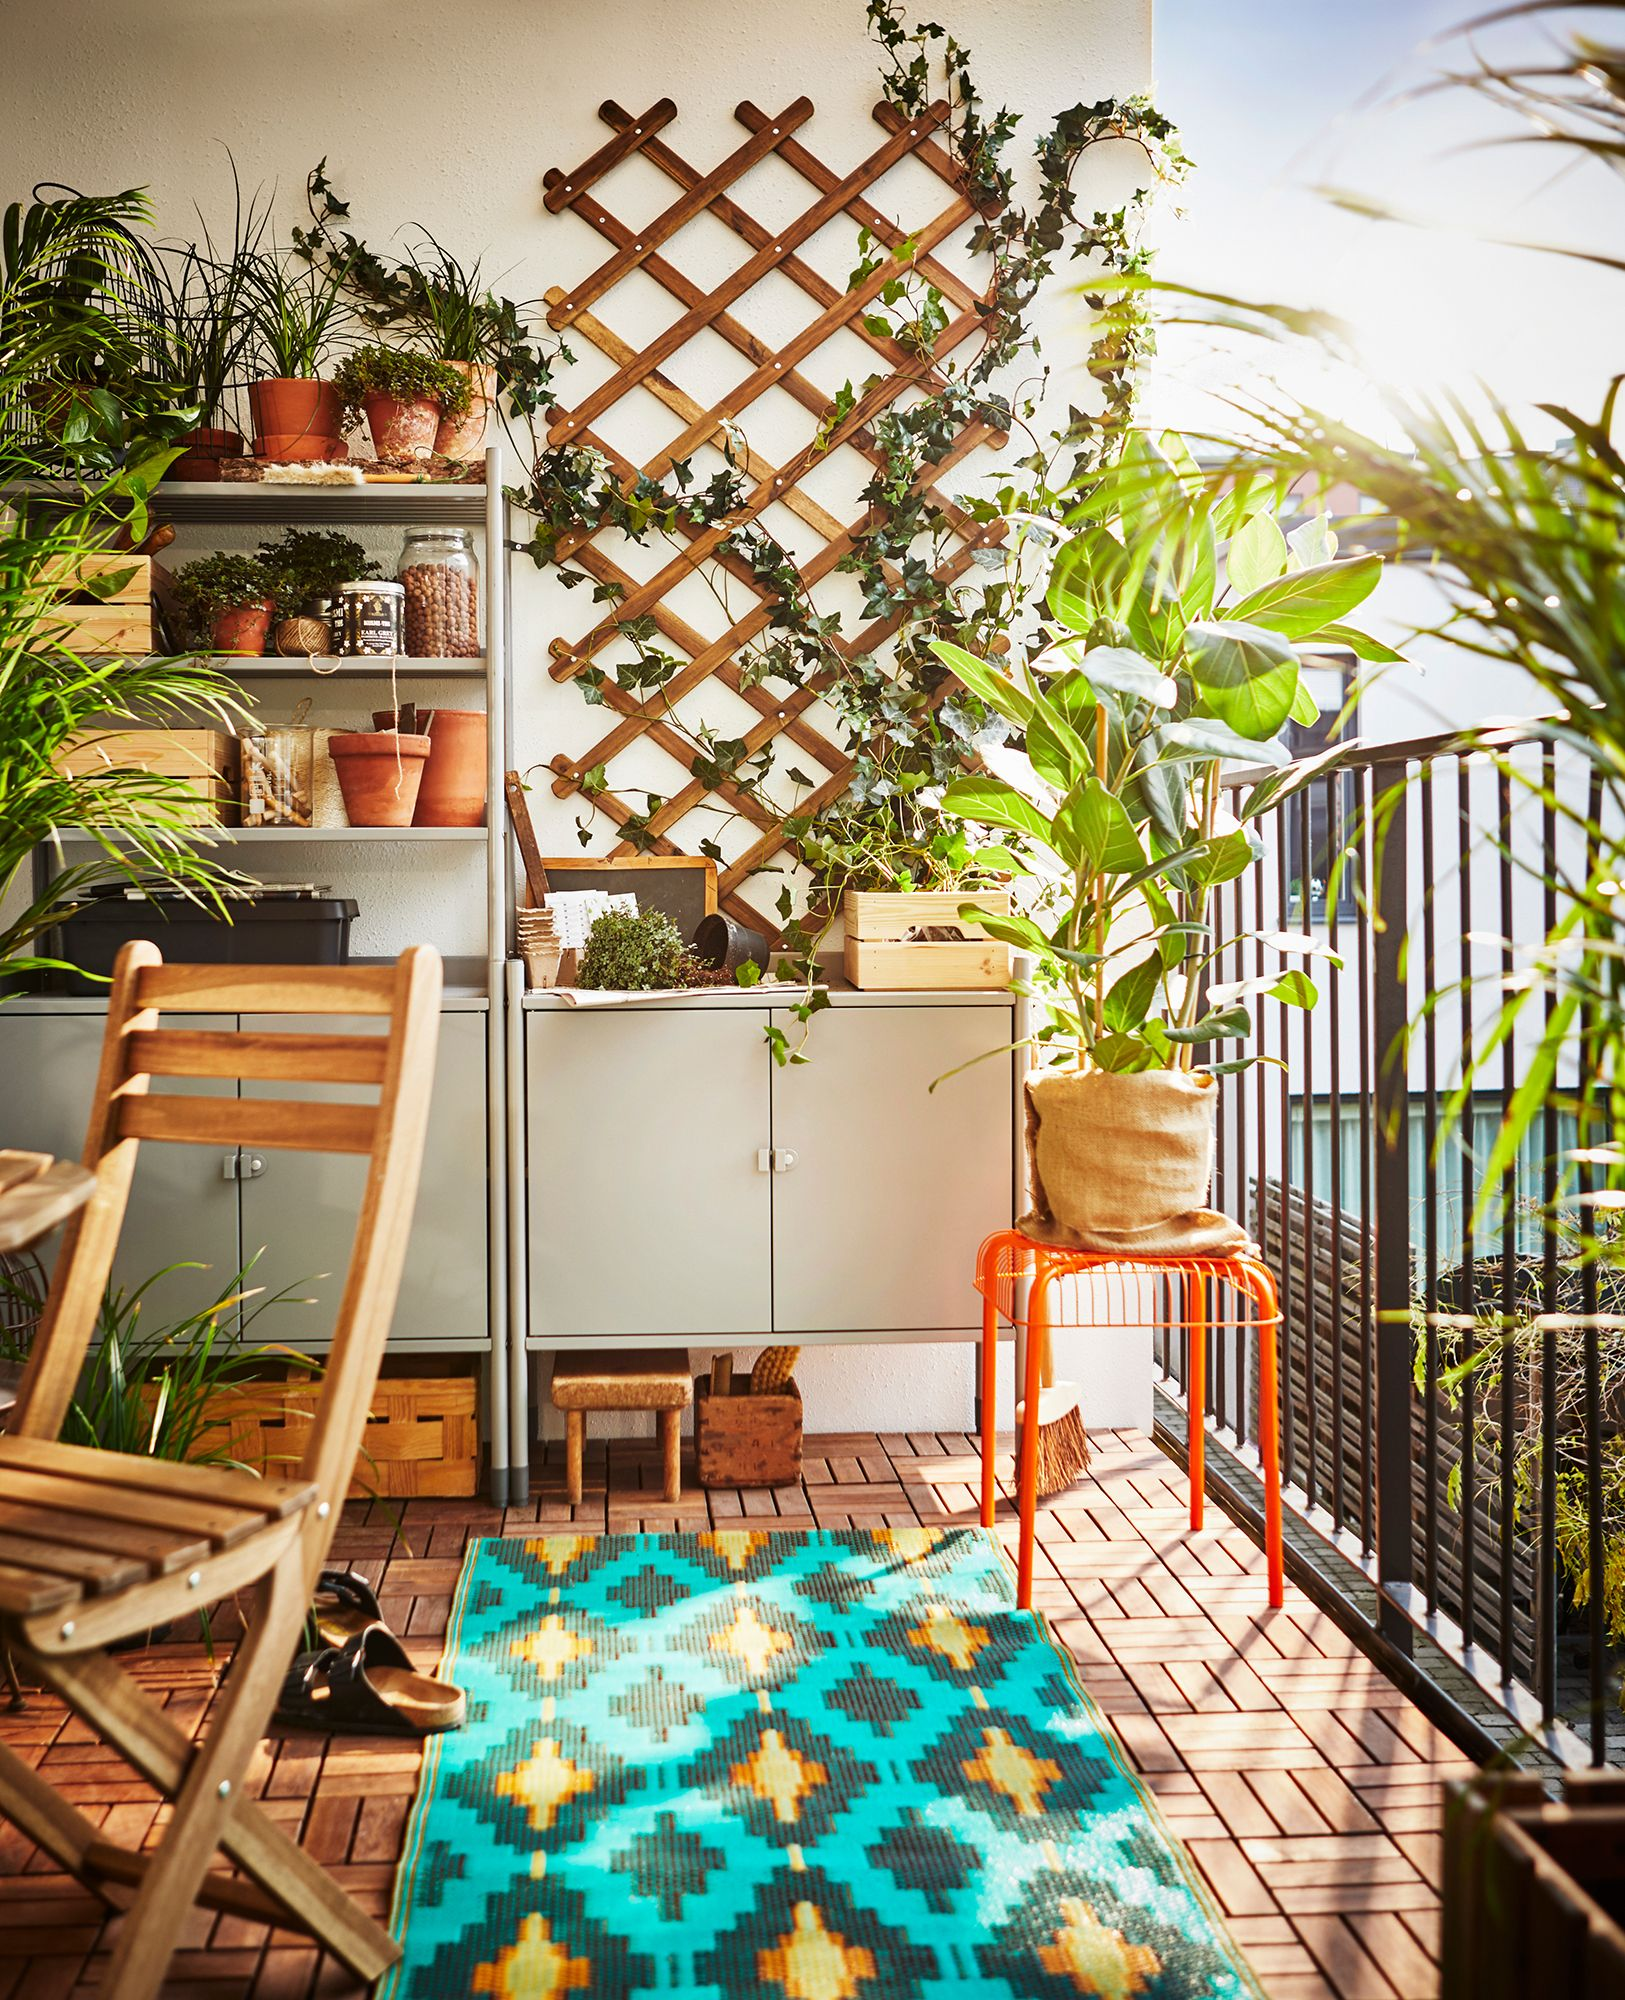 Create an oasis no matter how small your space is ikea australia outdoor living makeover